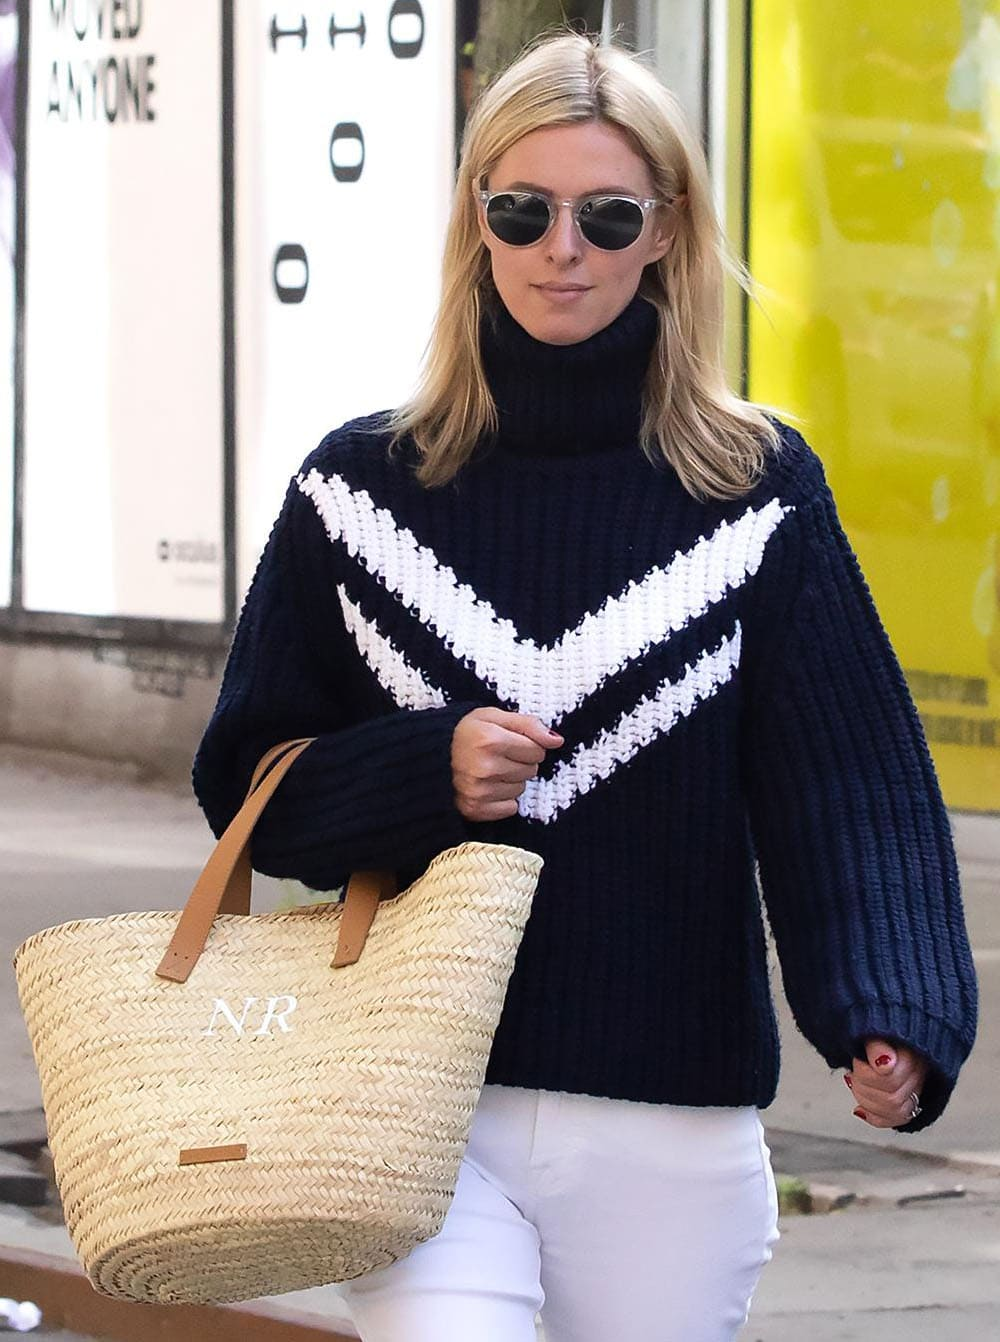 Nicky Hilton hides her eyes behind a pair of Garrett Leight sunglasses and carries a custom large basket woven tote